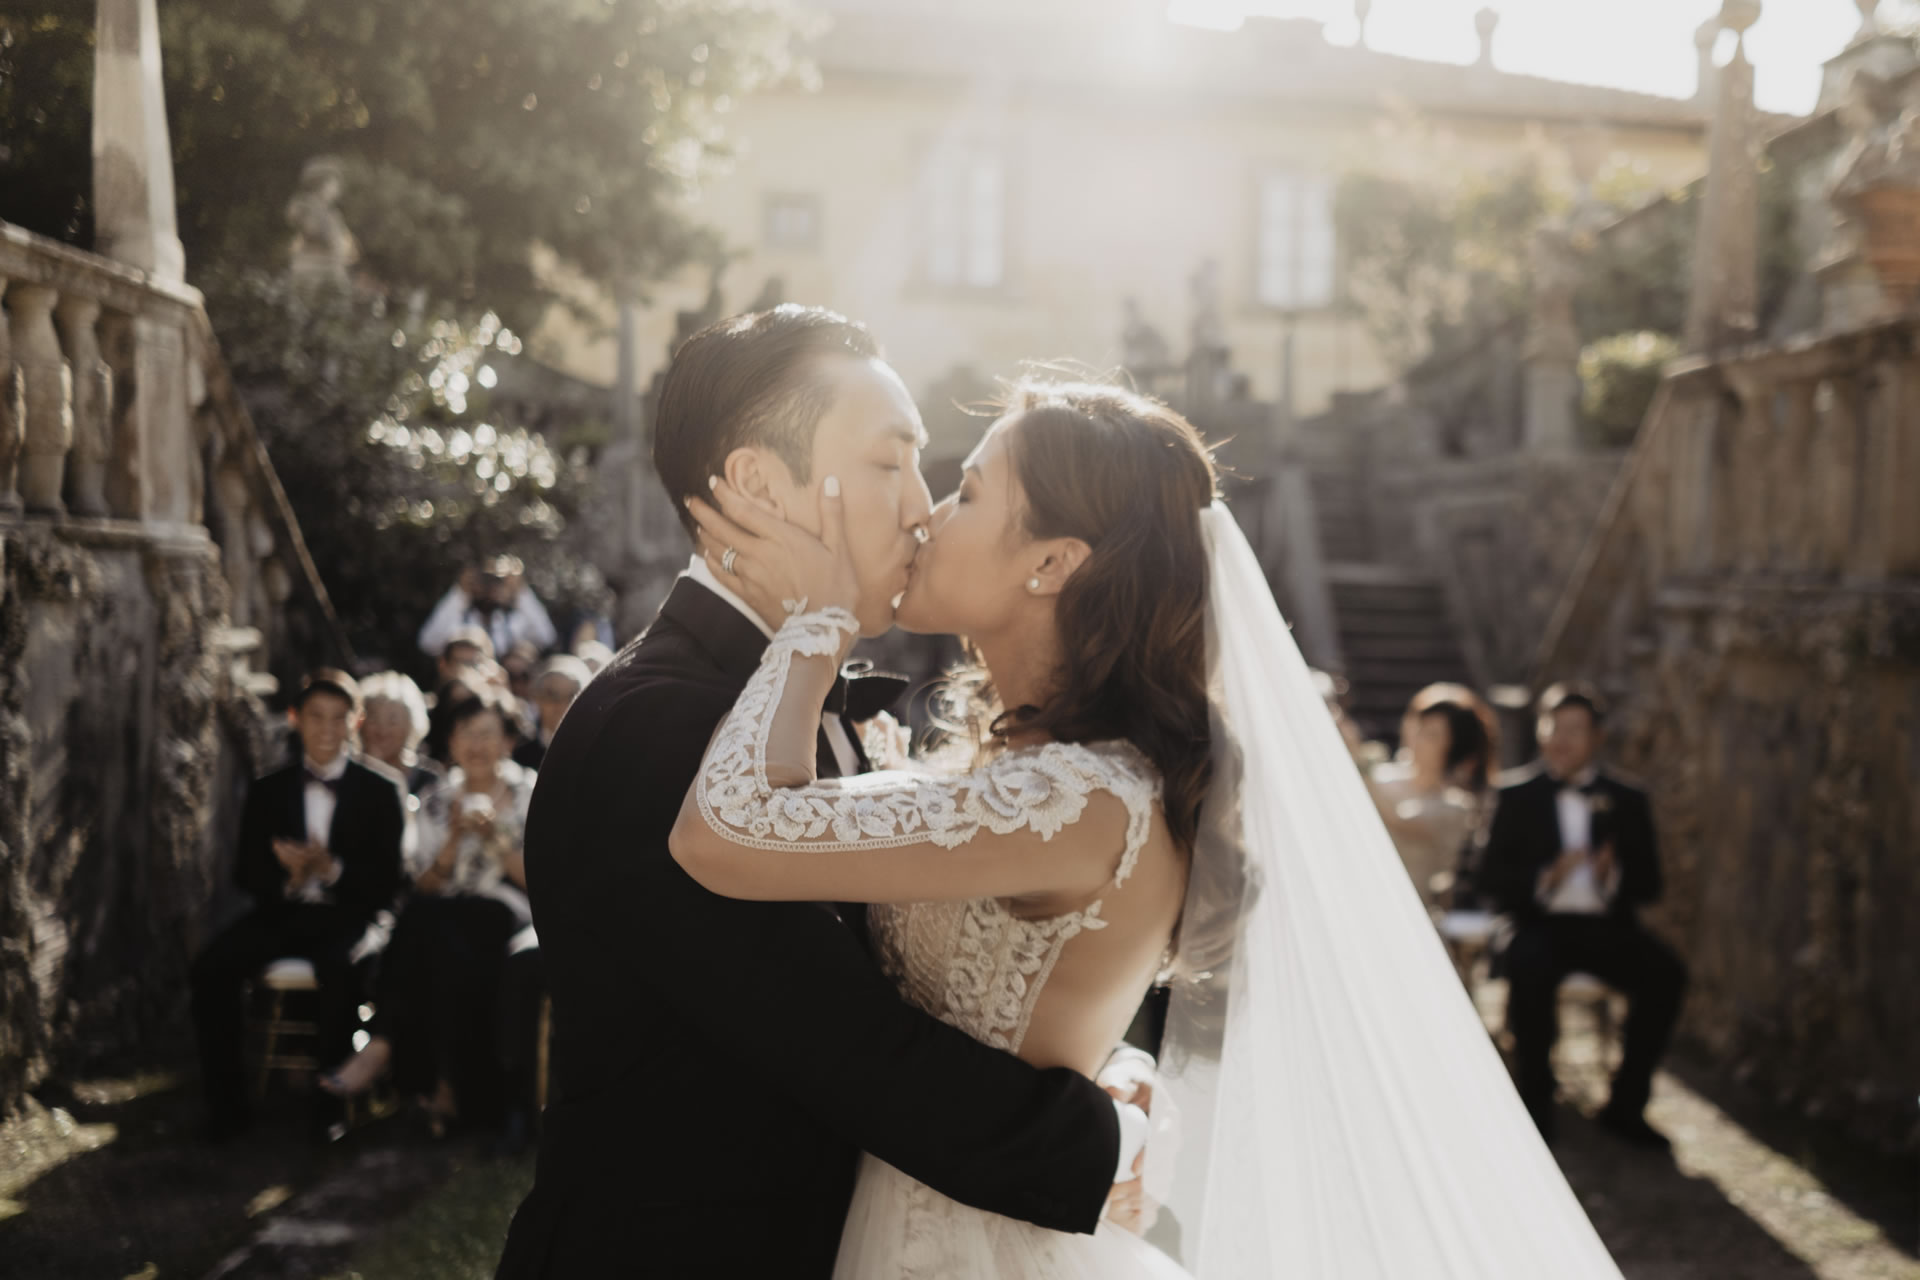 - 30 :: From Los angeles to Florence: a glamour asiatic wedding :: Luxury wedding photography - 29 ::  - 30